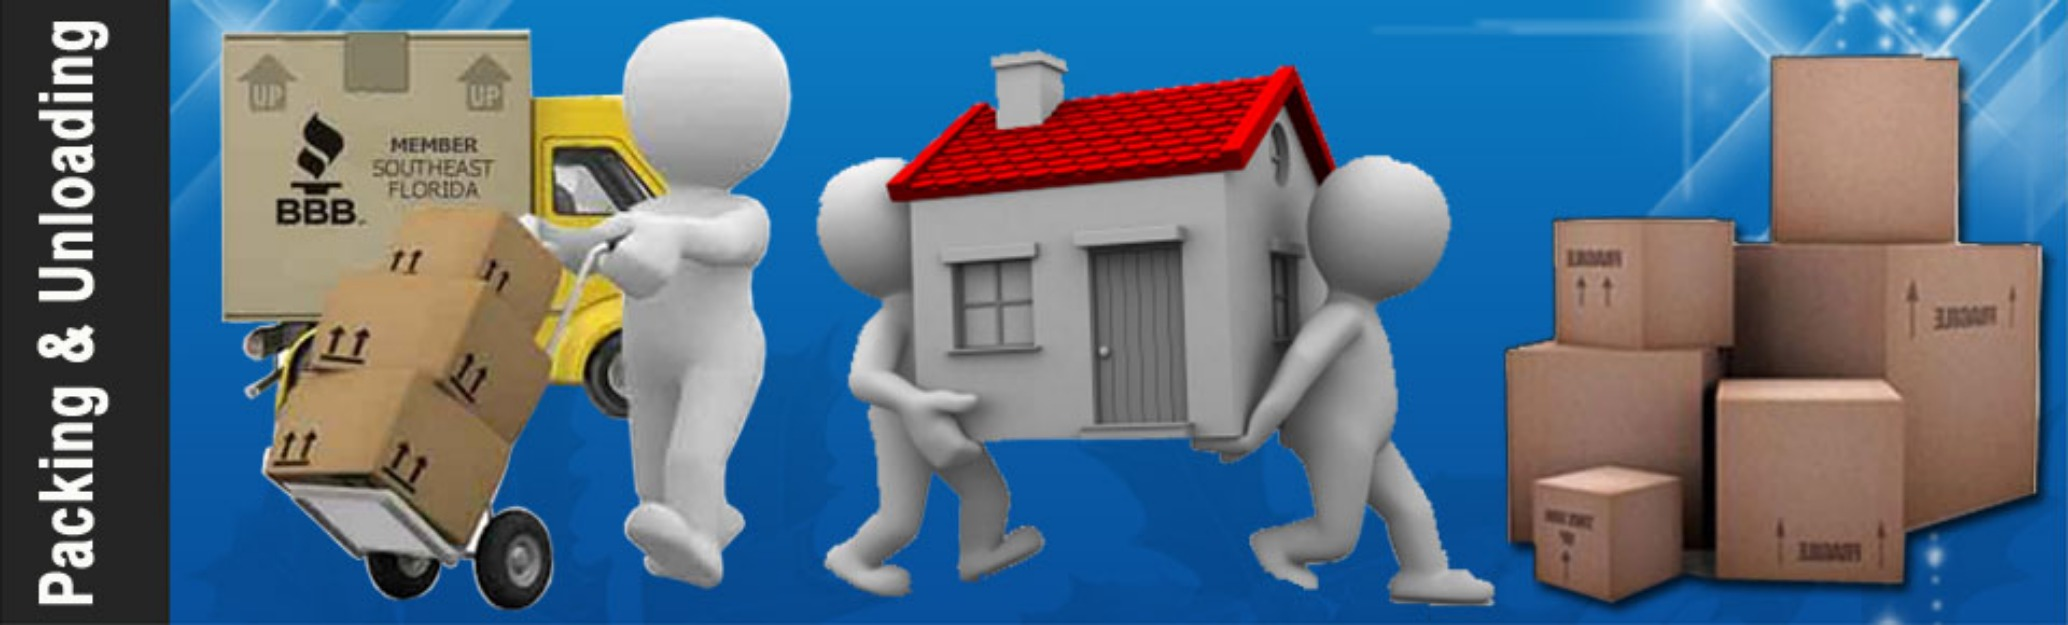 packers-movers-contact